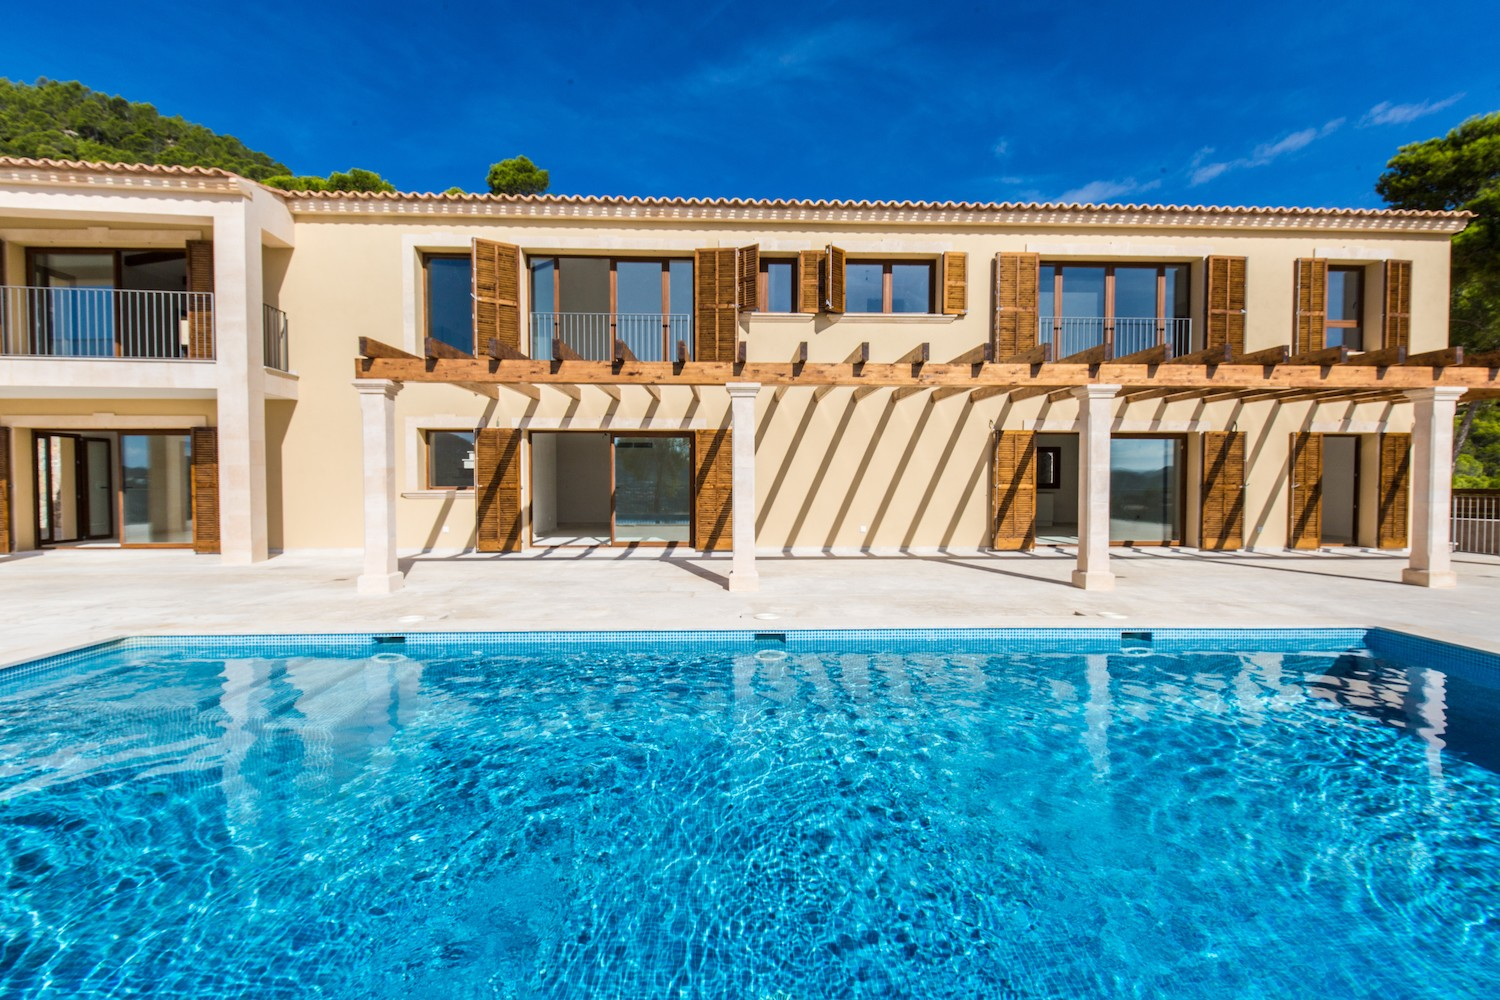 5 bedroom villa for sale, Andratx, Mallorca